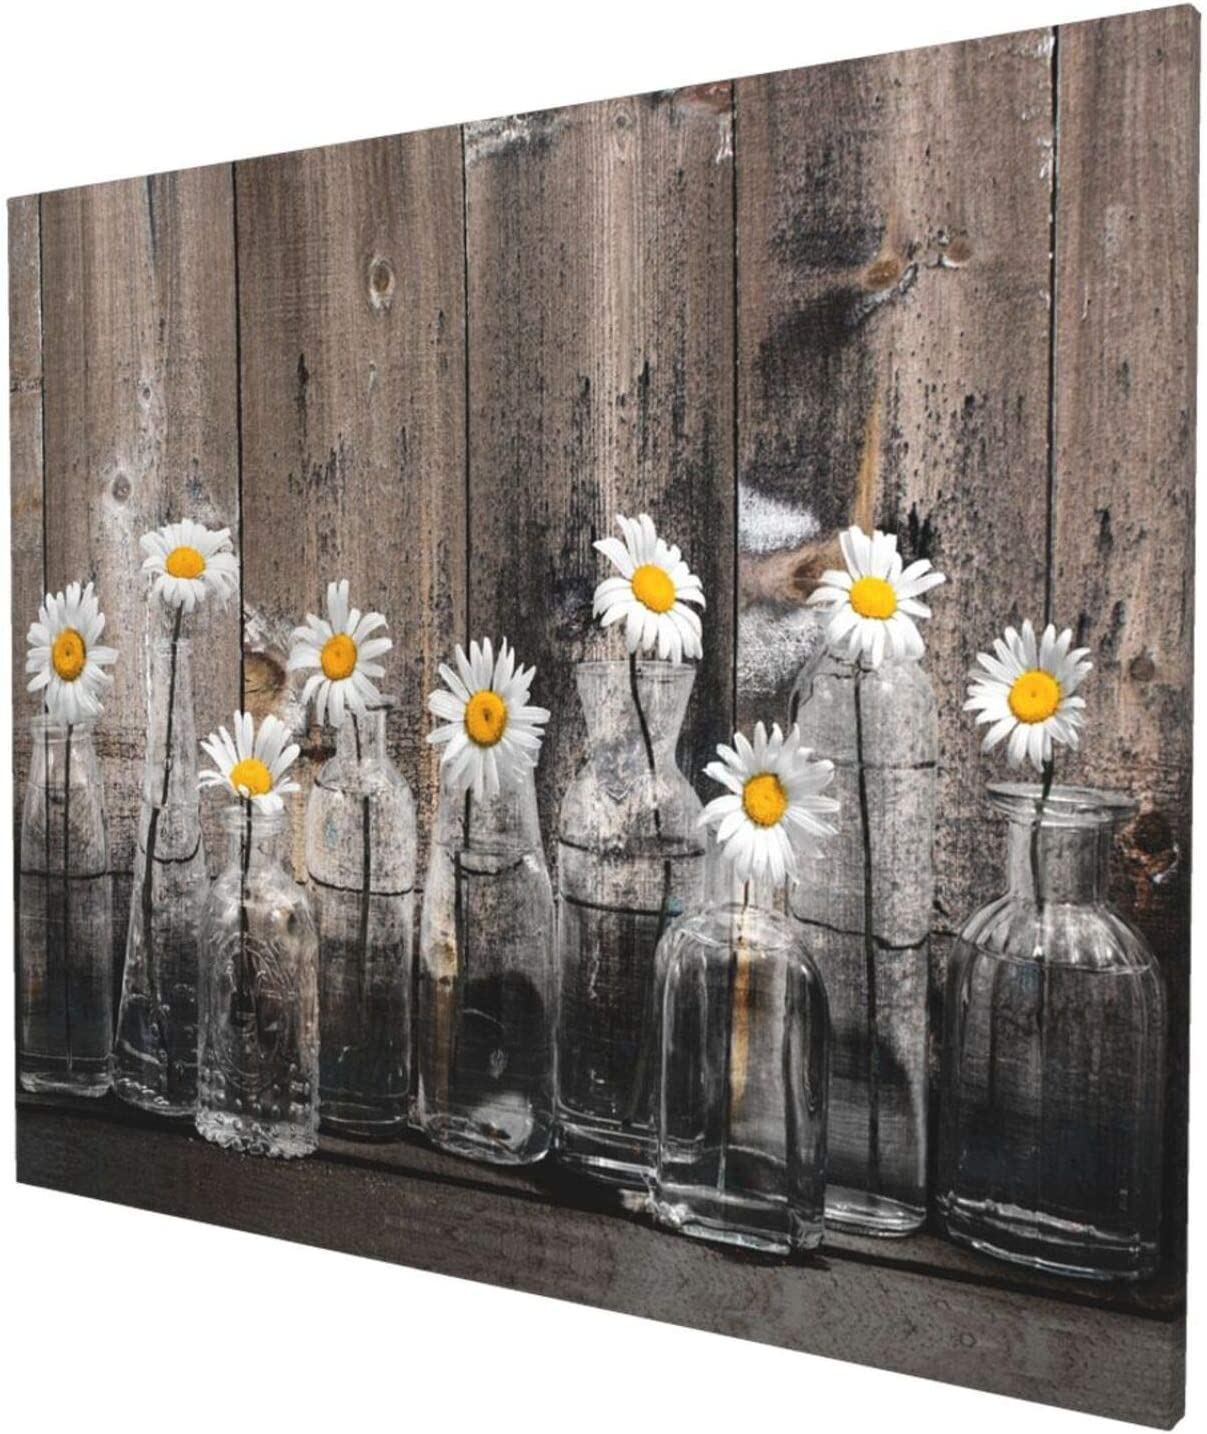 Year-end annual account EZYES Vintage Daisy Flower Vase Picture SALENEW very popular! Painting Abstract Modern